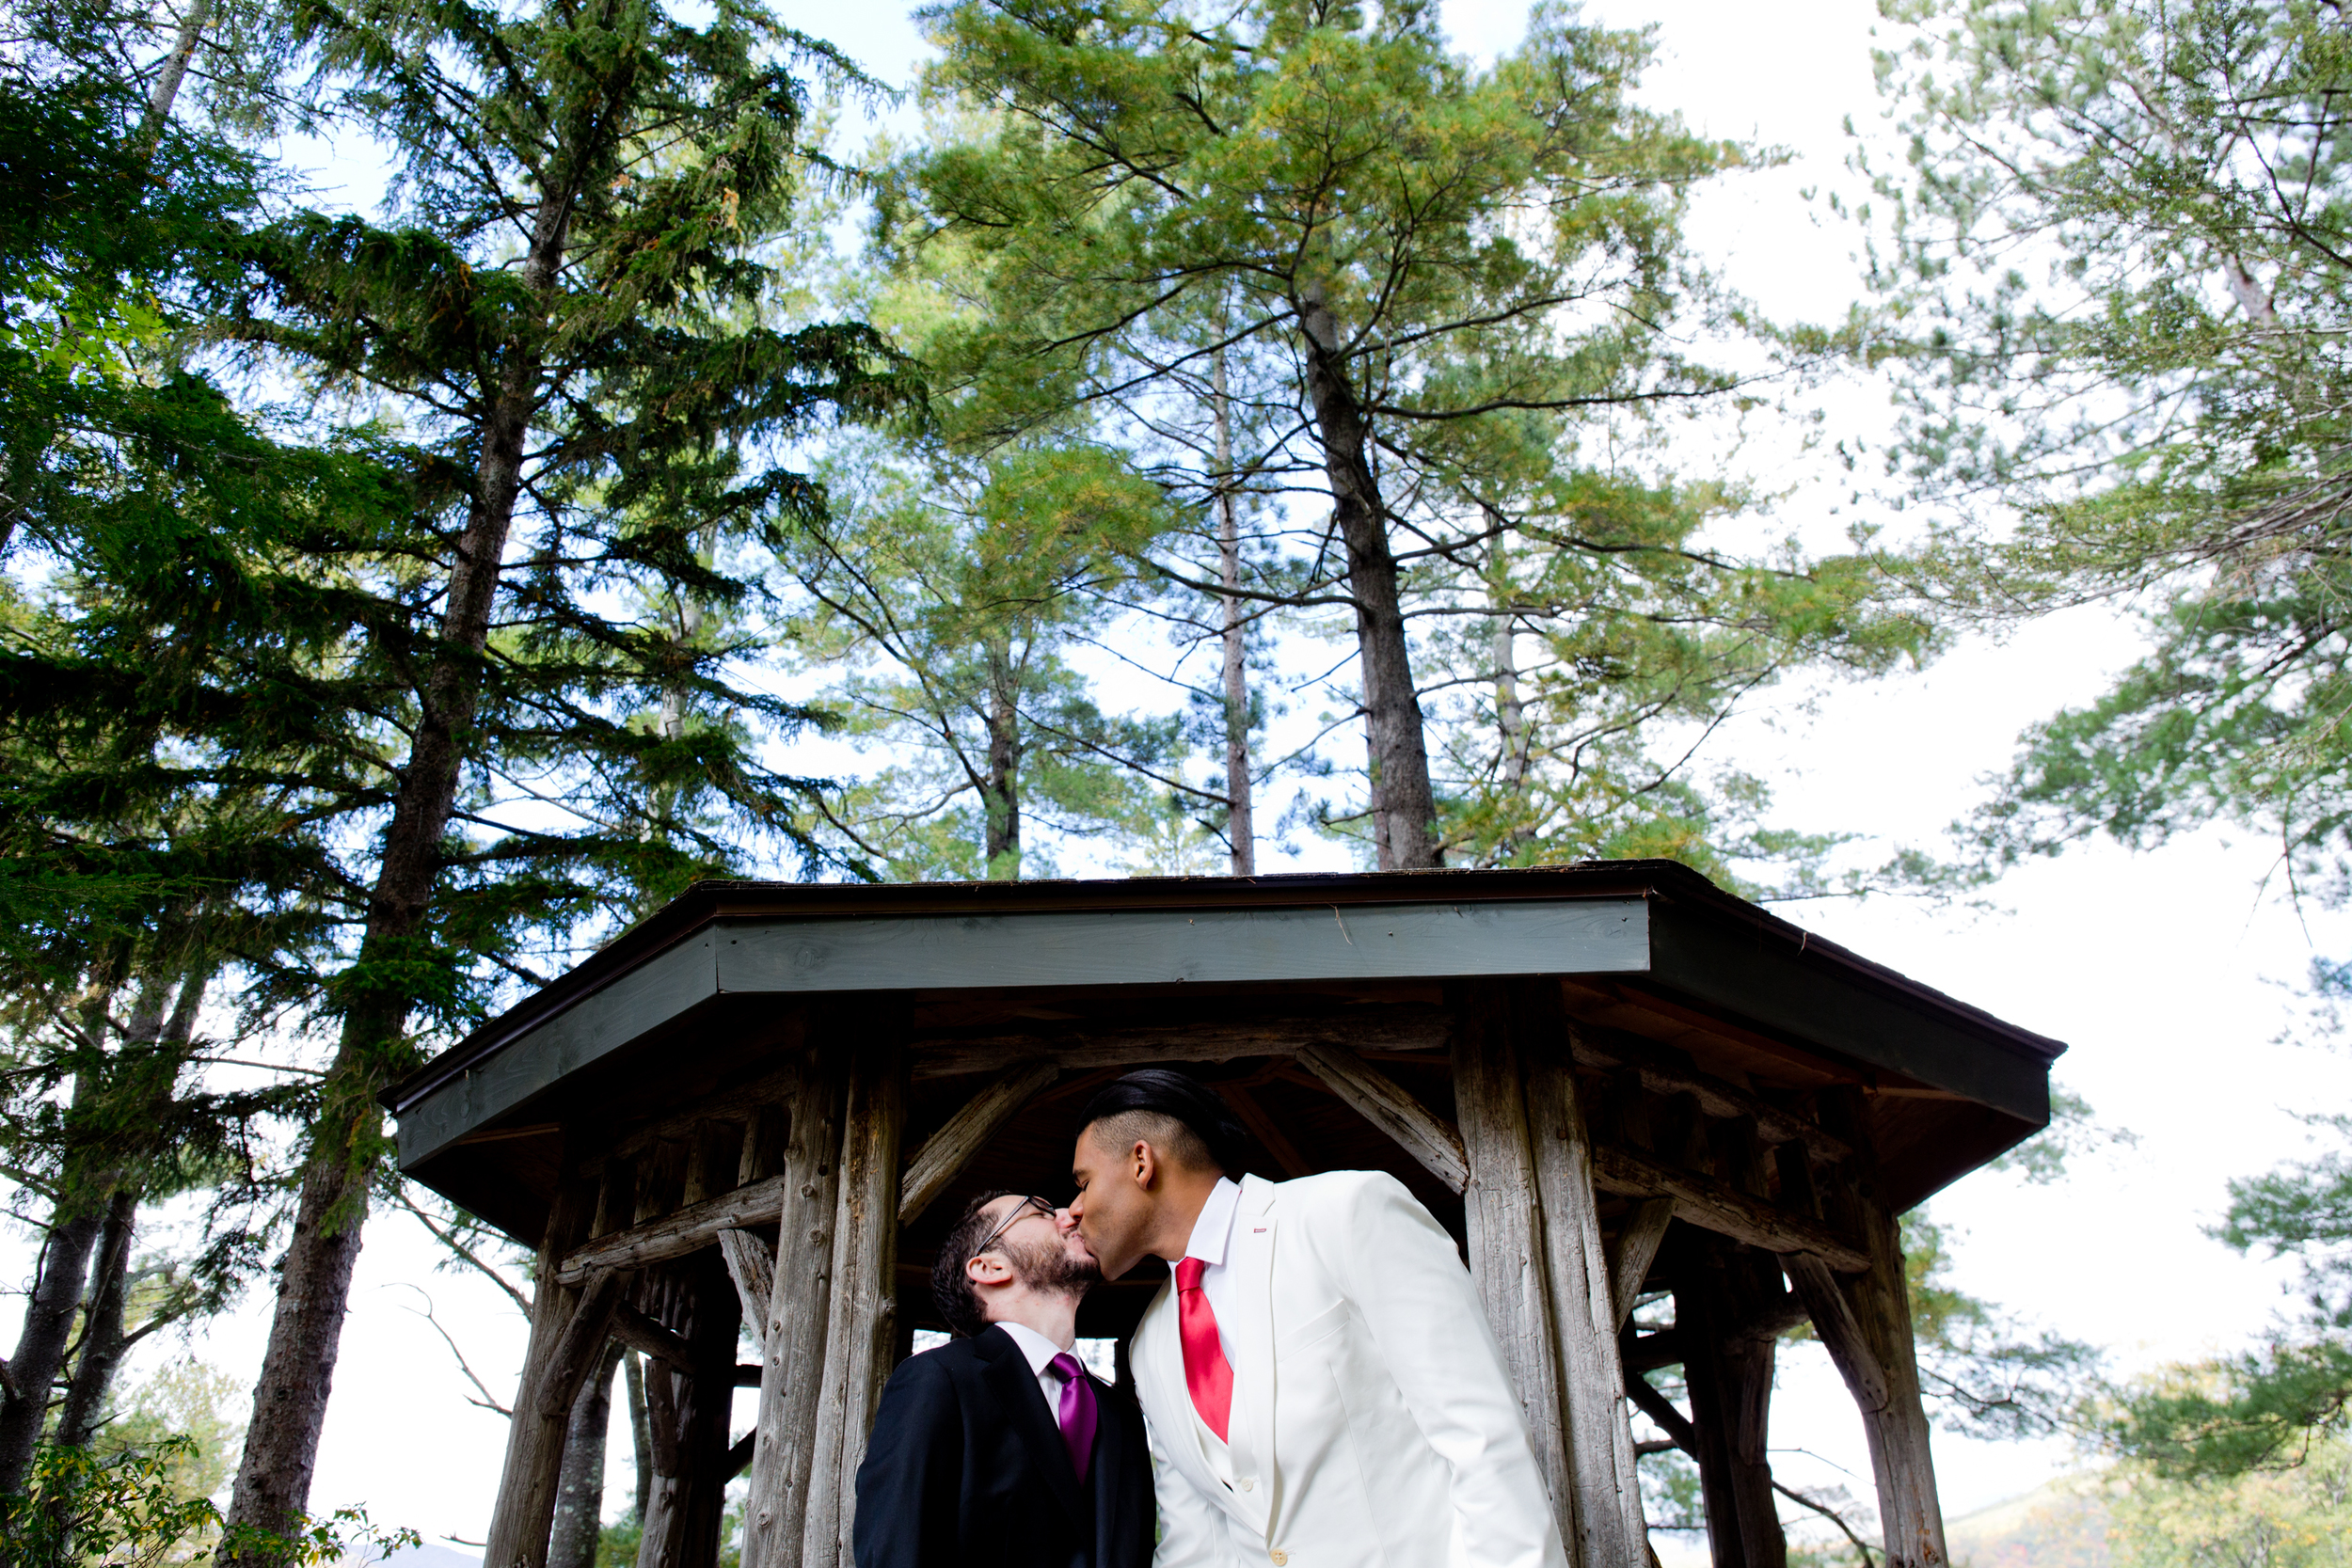 042_CarlyGaebe_SteadfastStudio_WeddingPhotography_Fall_Autumn_Foliage_UpstateNewYork_Gay_Biracial_OnteoraMountainHouse_HudsonValley_Grooms_Rustic.jpg